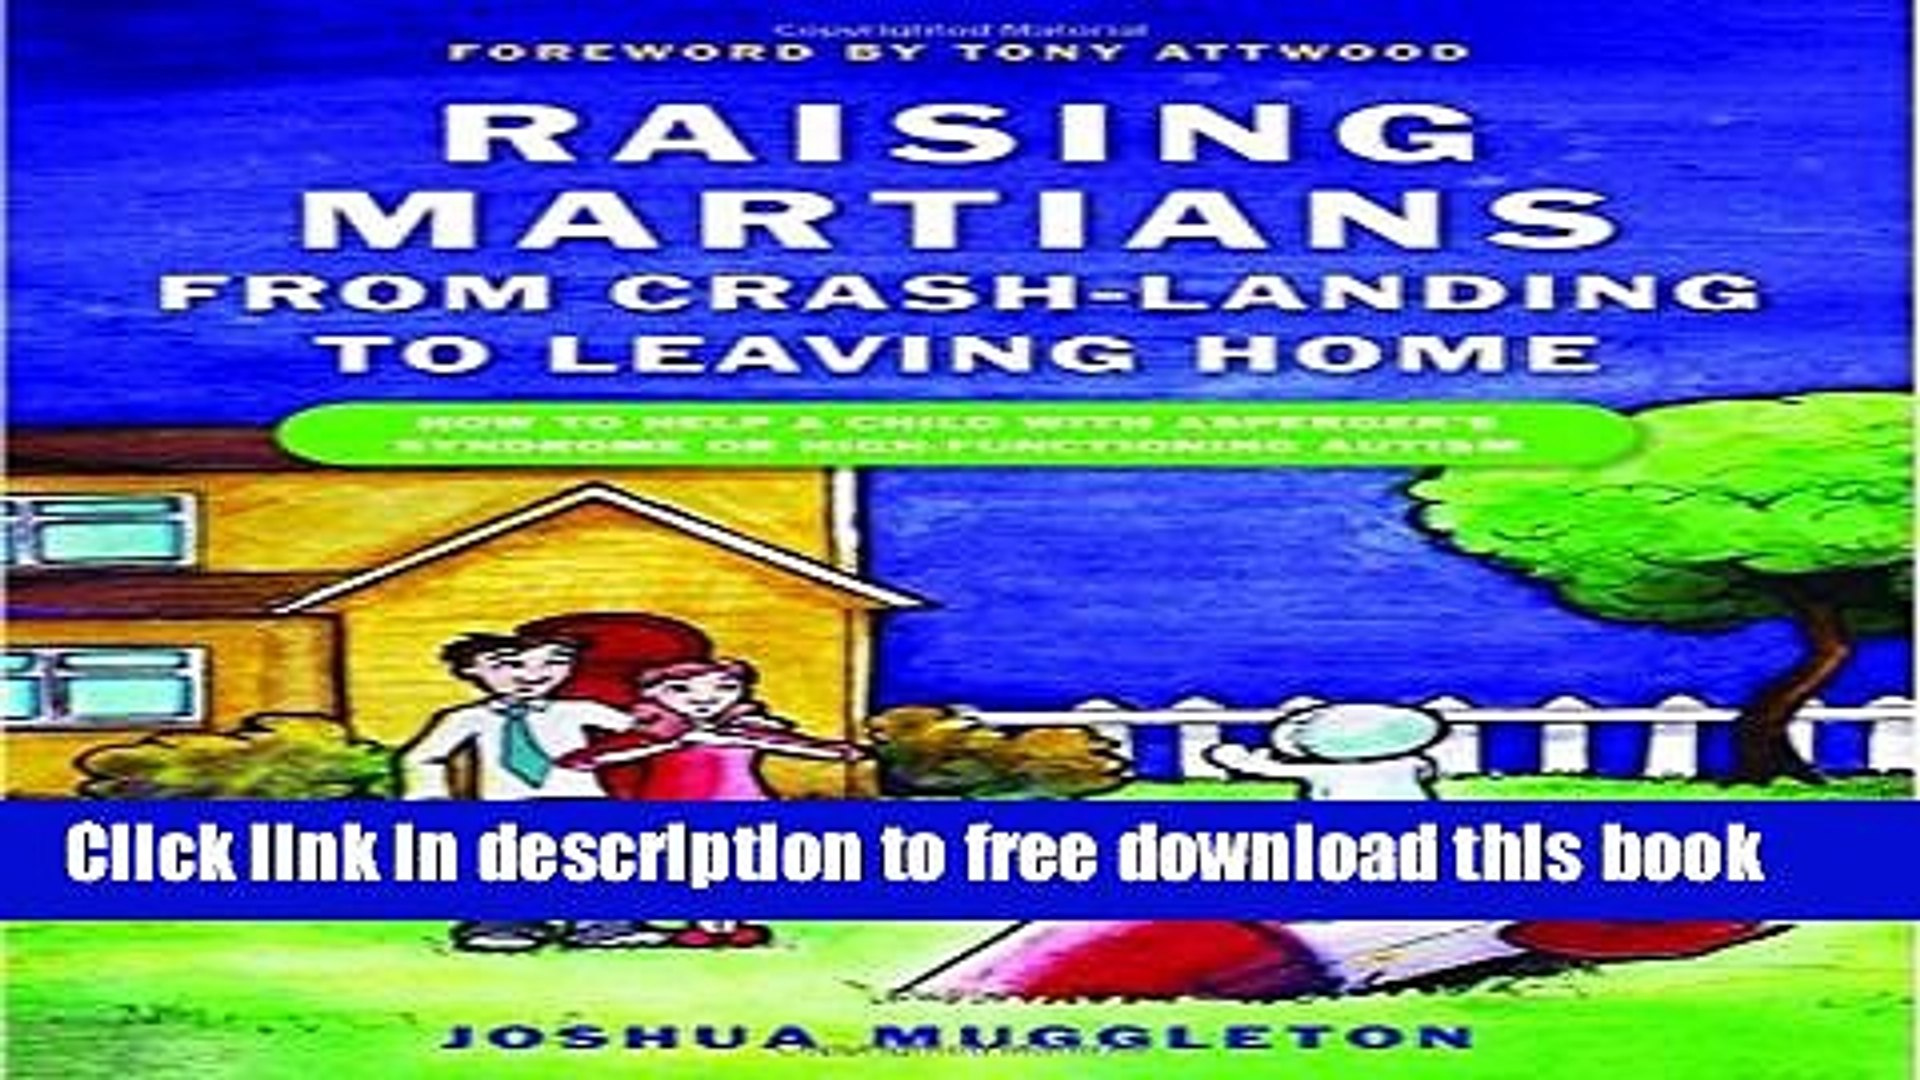 [Download] Raising Martians - from Crash-landing to Leaving Home: How to Help a Child with